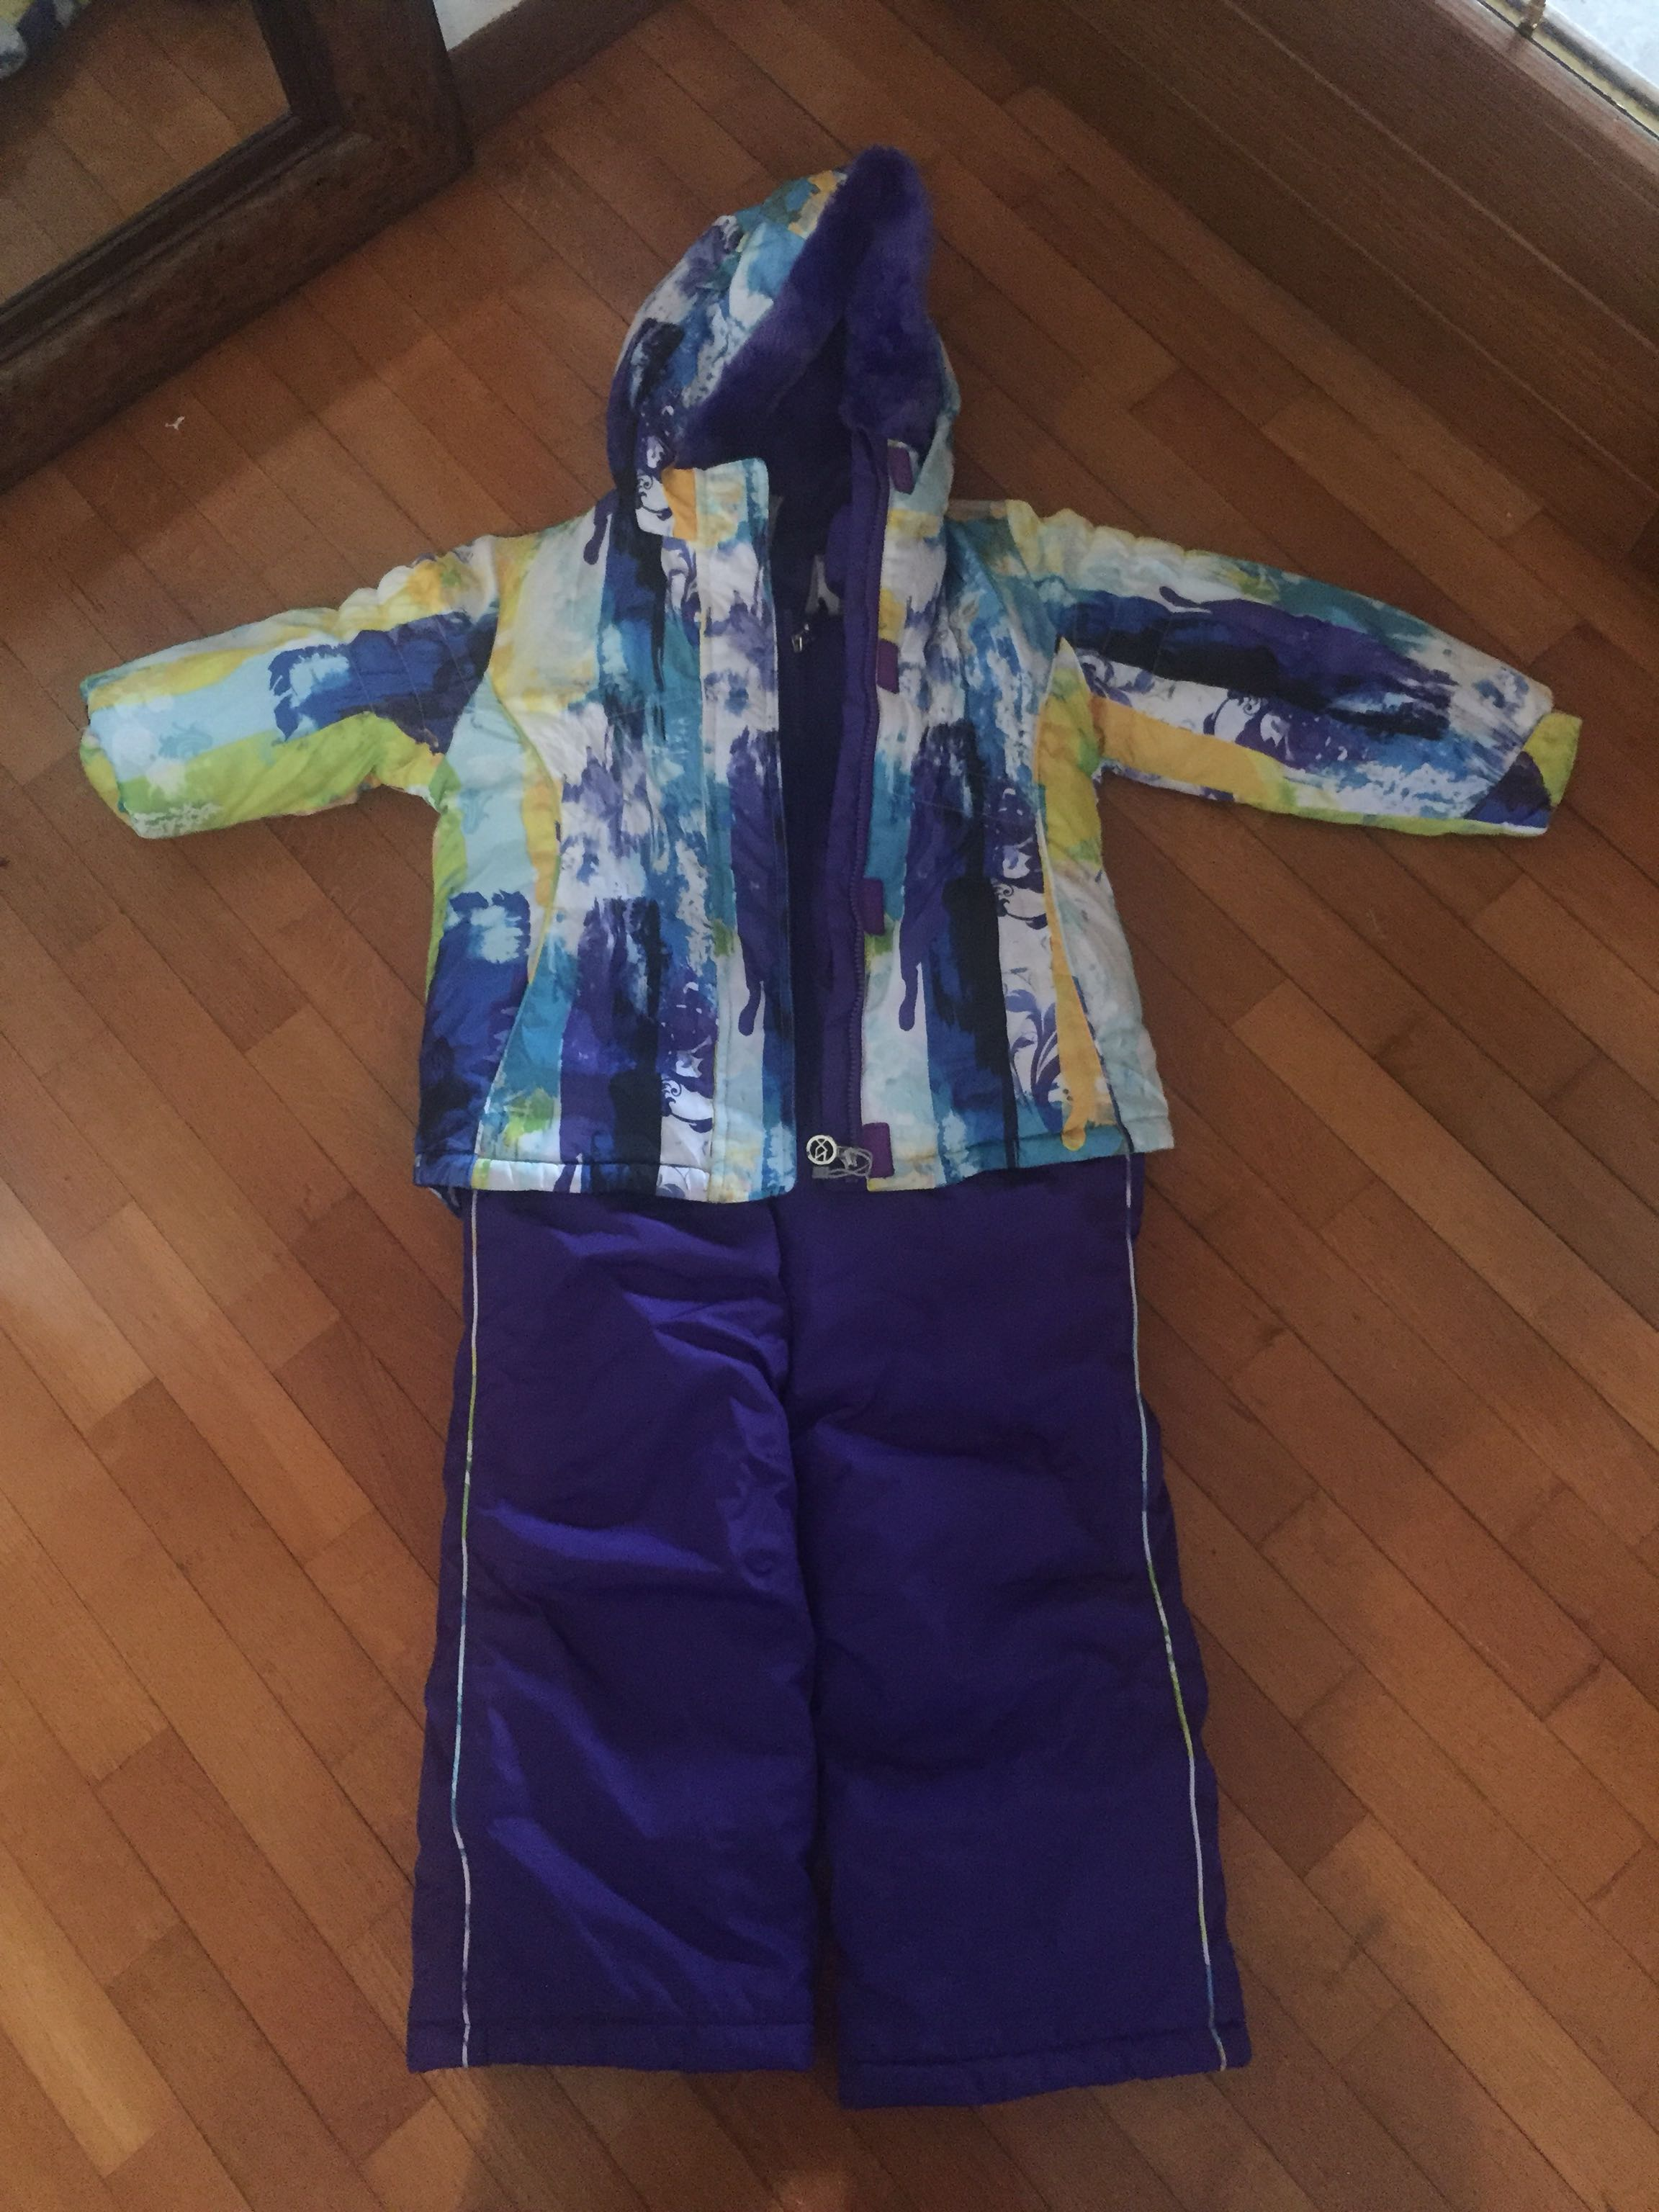 Snow suit with jacket